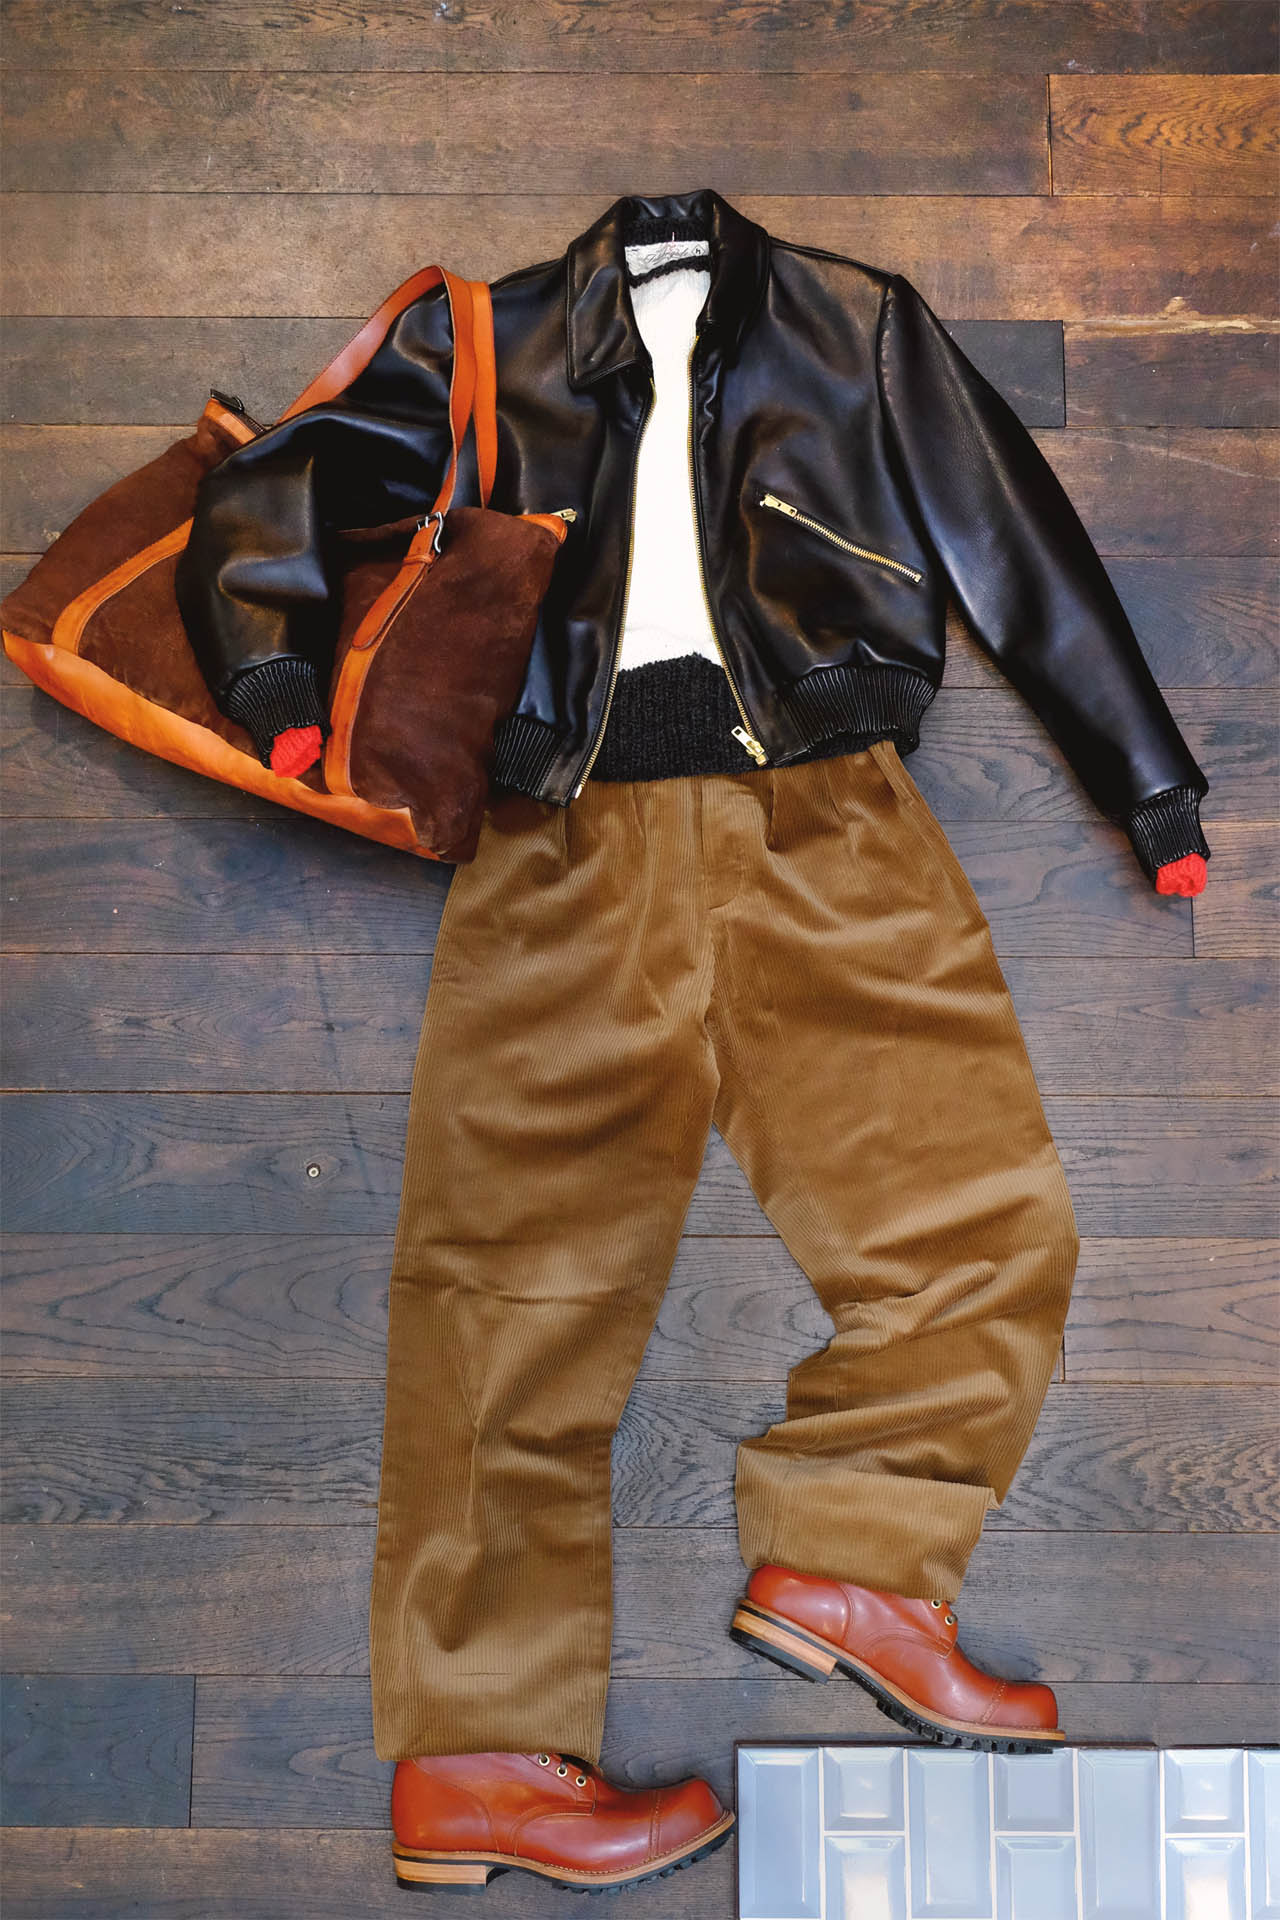 outfit-interbrigade-pullover-strick-lederjacke-kordhose-numero10-tasche-vibergboots-serviceboot